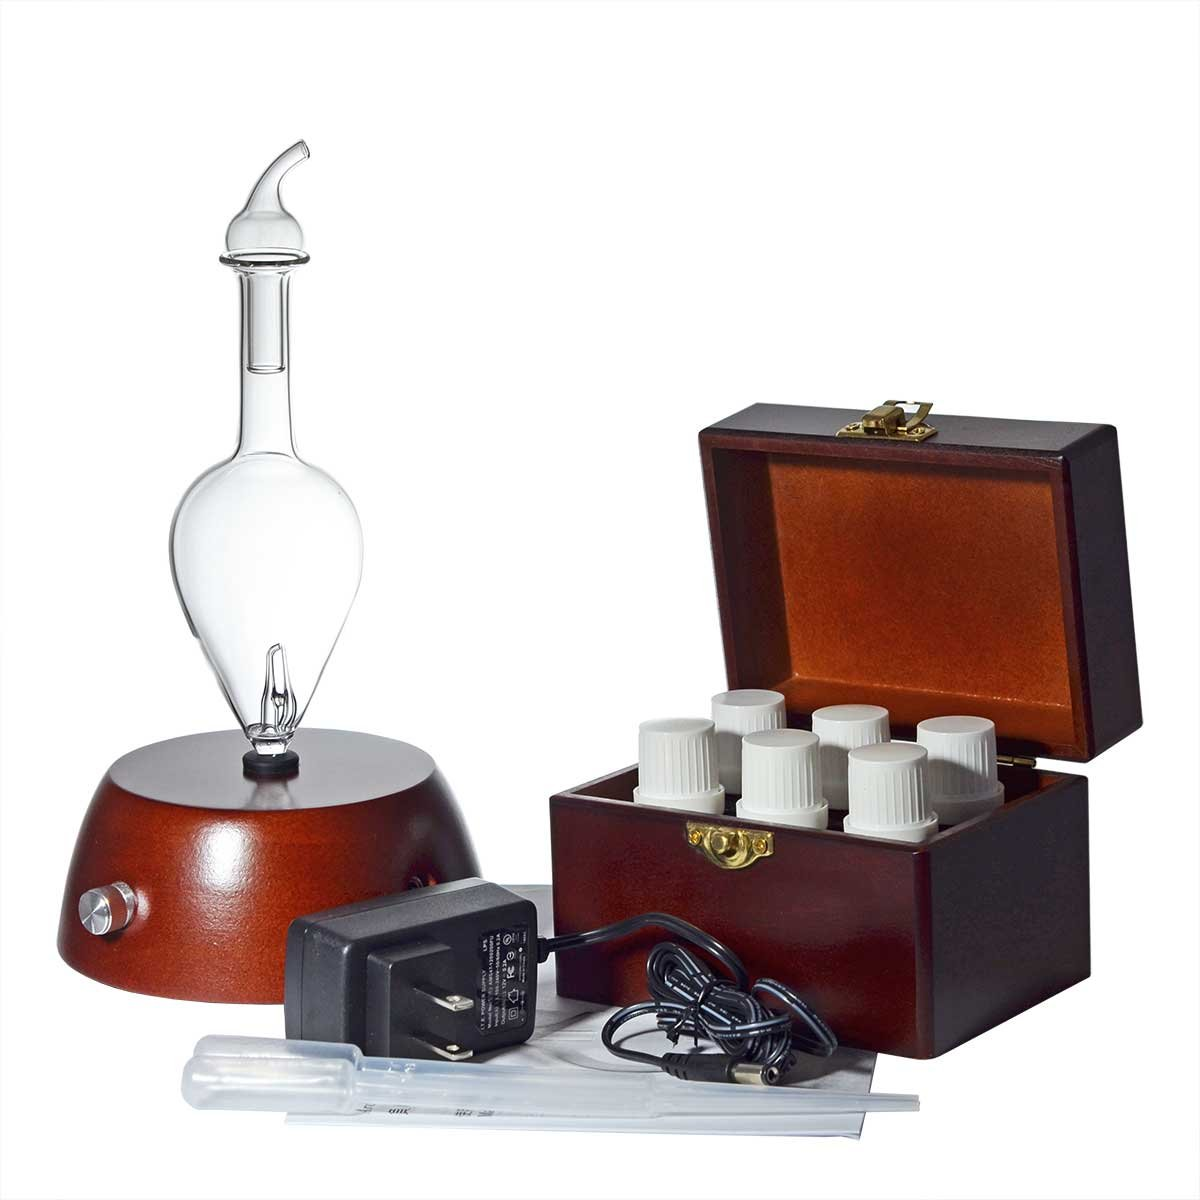 Explorer Aromatherapy Starter Kit By Organic Aromas - Elegance Diffuser and 6 High Quality 100% Pure Essential Oils in 10ml Bottles with Wooden Storage Box